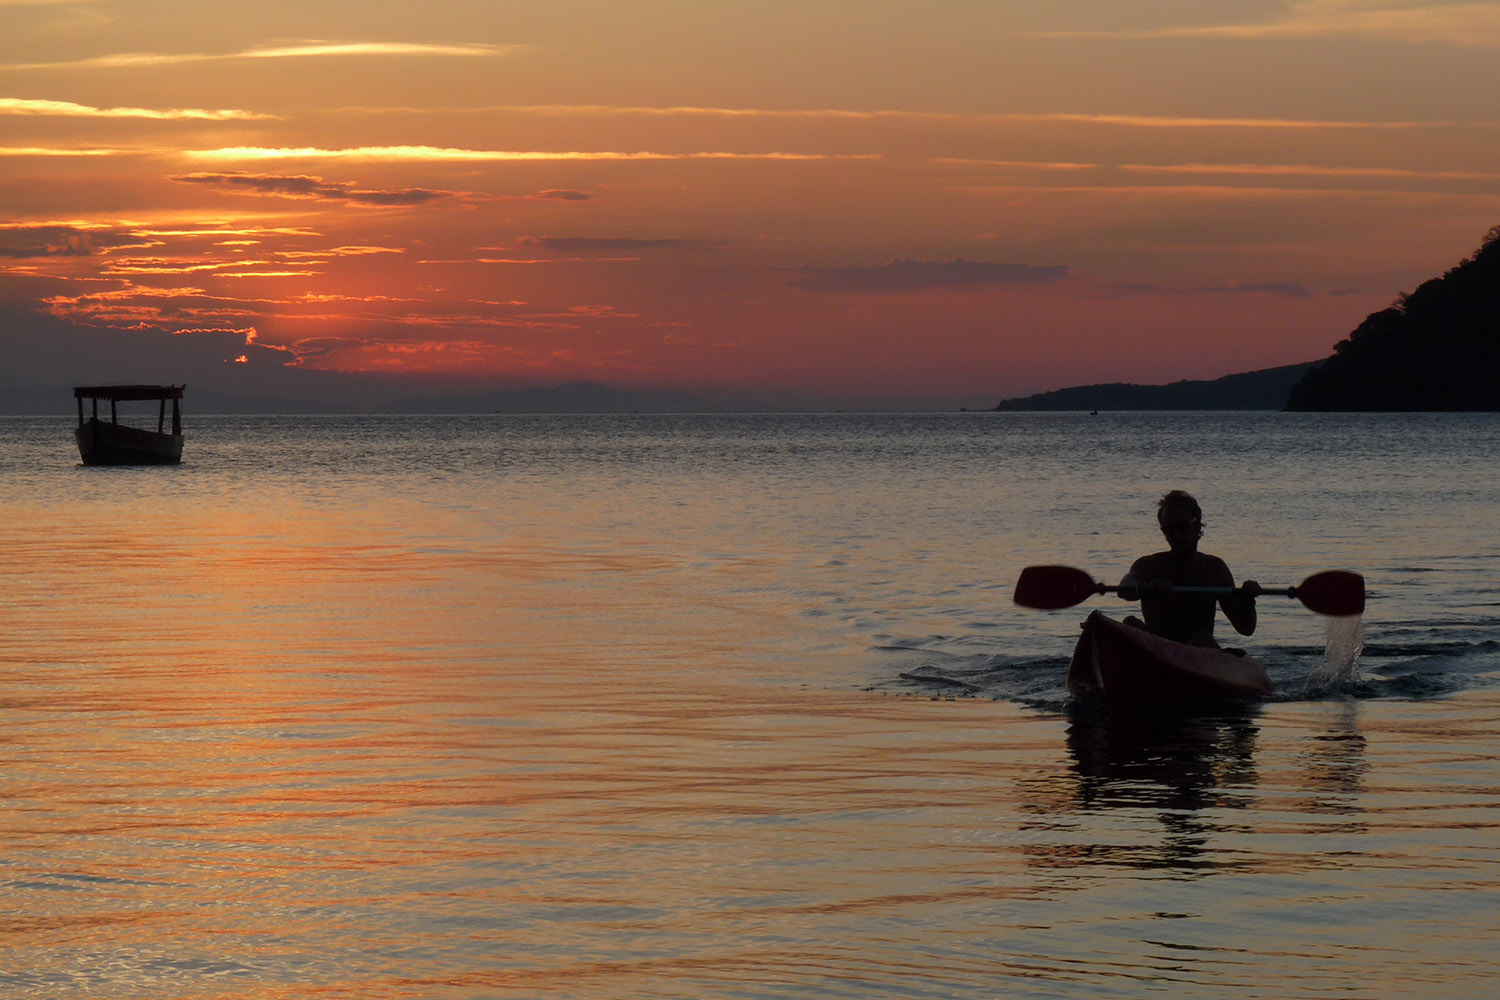 cape maclear malawi-points-of-interest-tours-malawian-style-malawi-adventures-experiences-specialist-tour-operator-kayaking